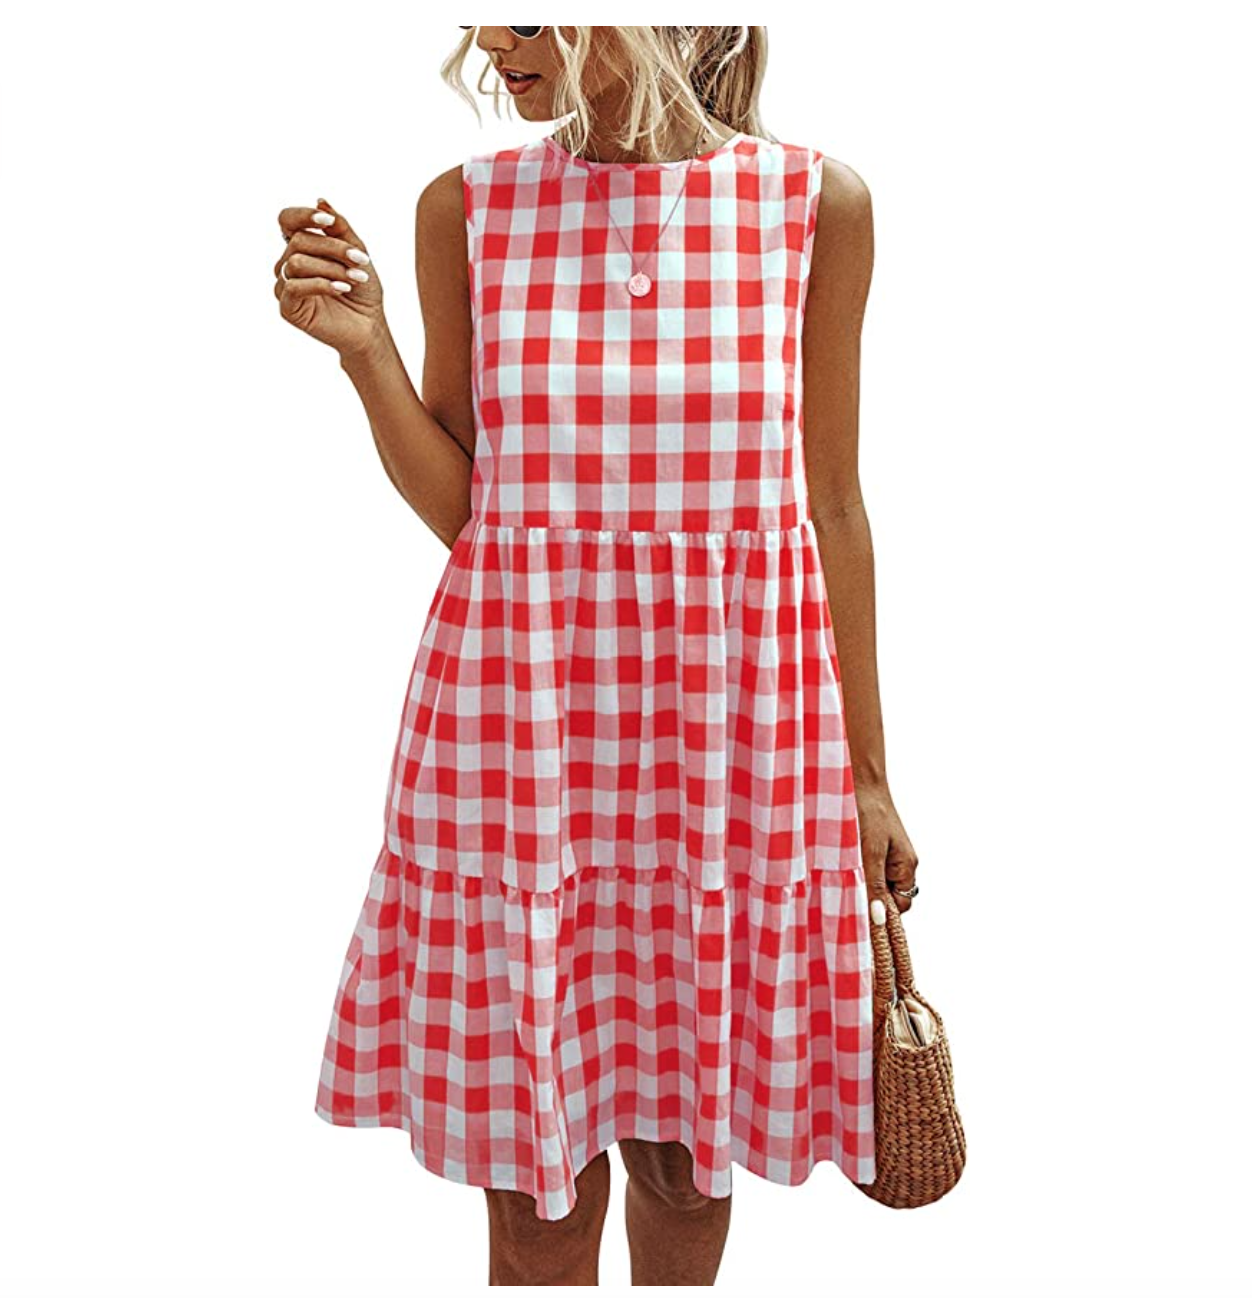 PRETTYGARDEN Plaid Ruffle Sundress